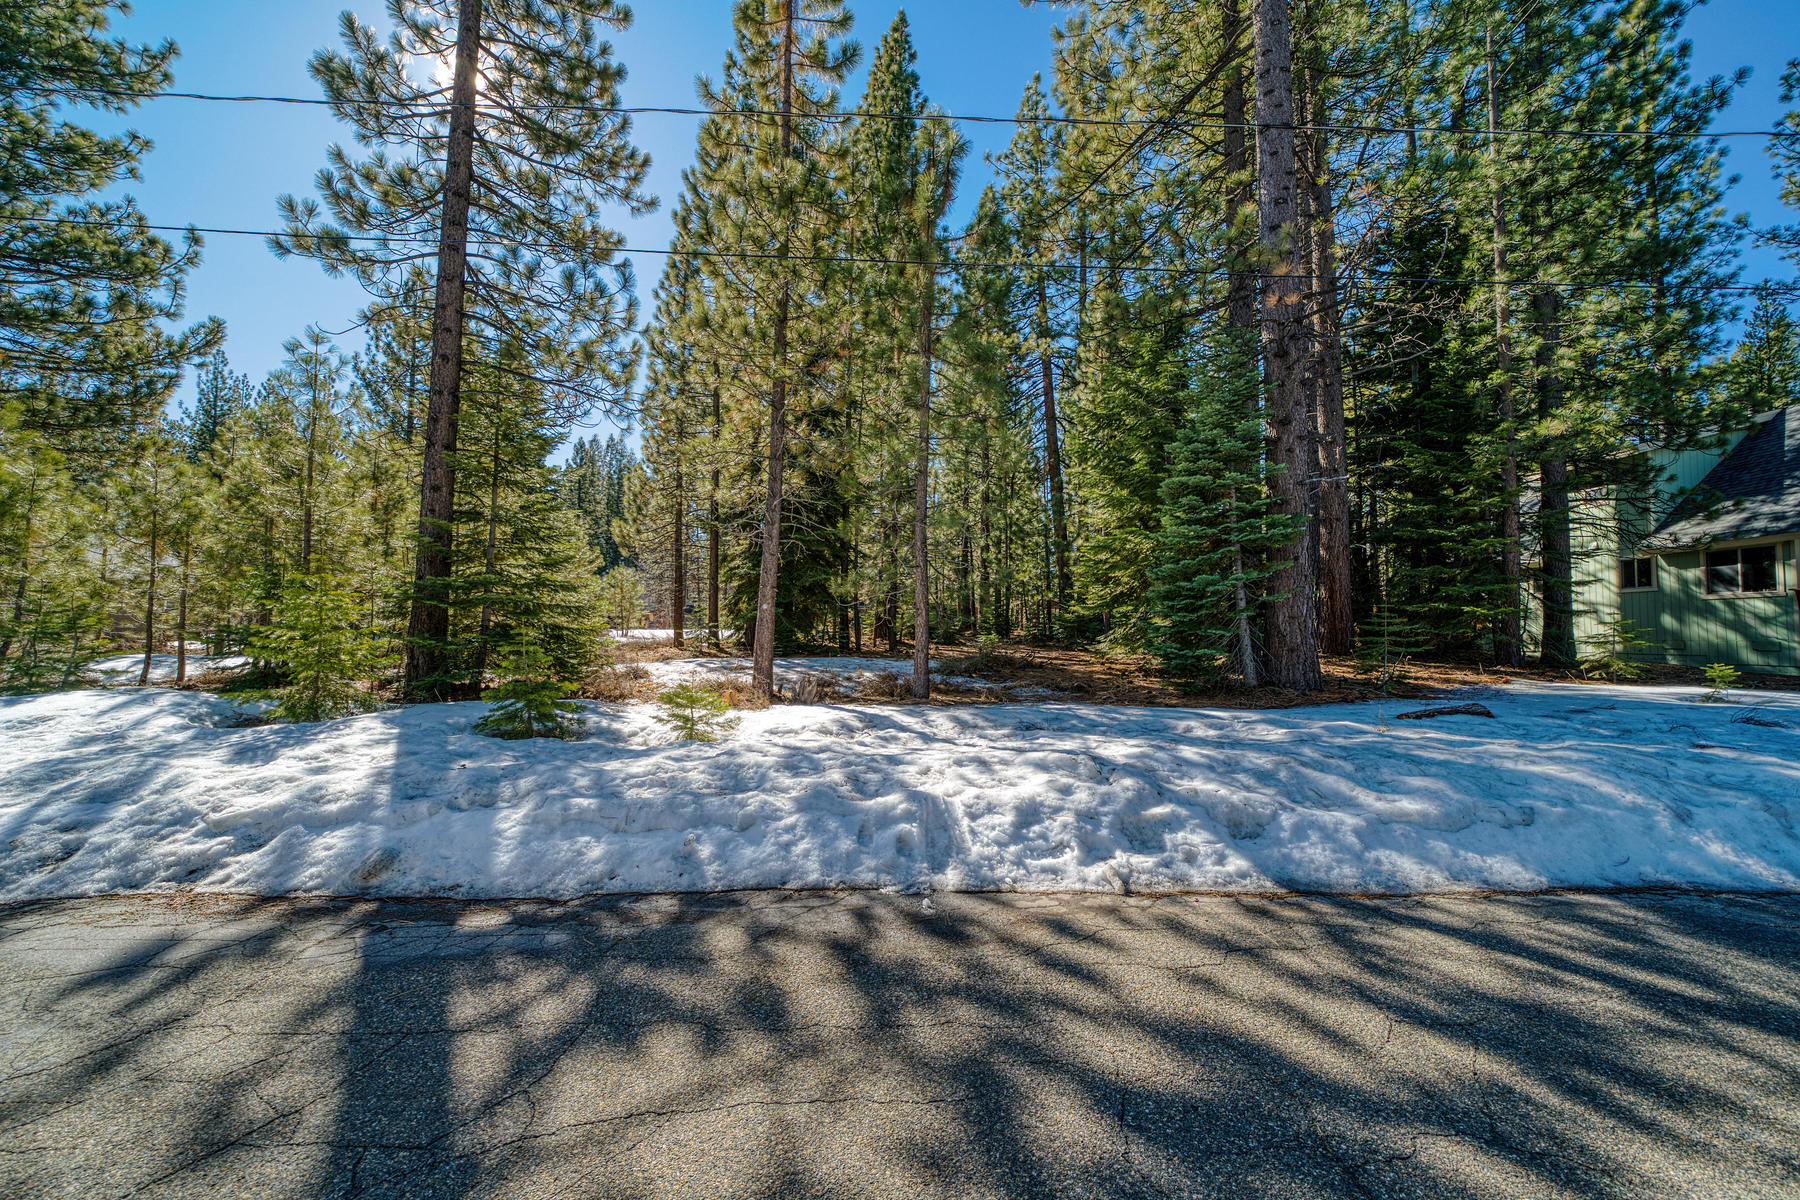 Terreno por un Venta en Spacious, level lot. 712 Shoshone Street South Lake Tahoe, California 96150 Estados Unidos